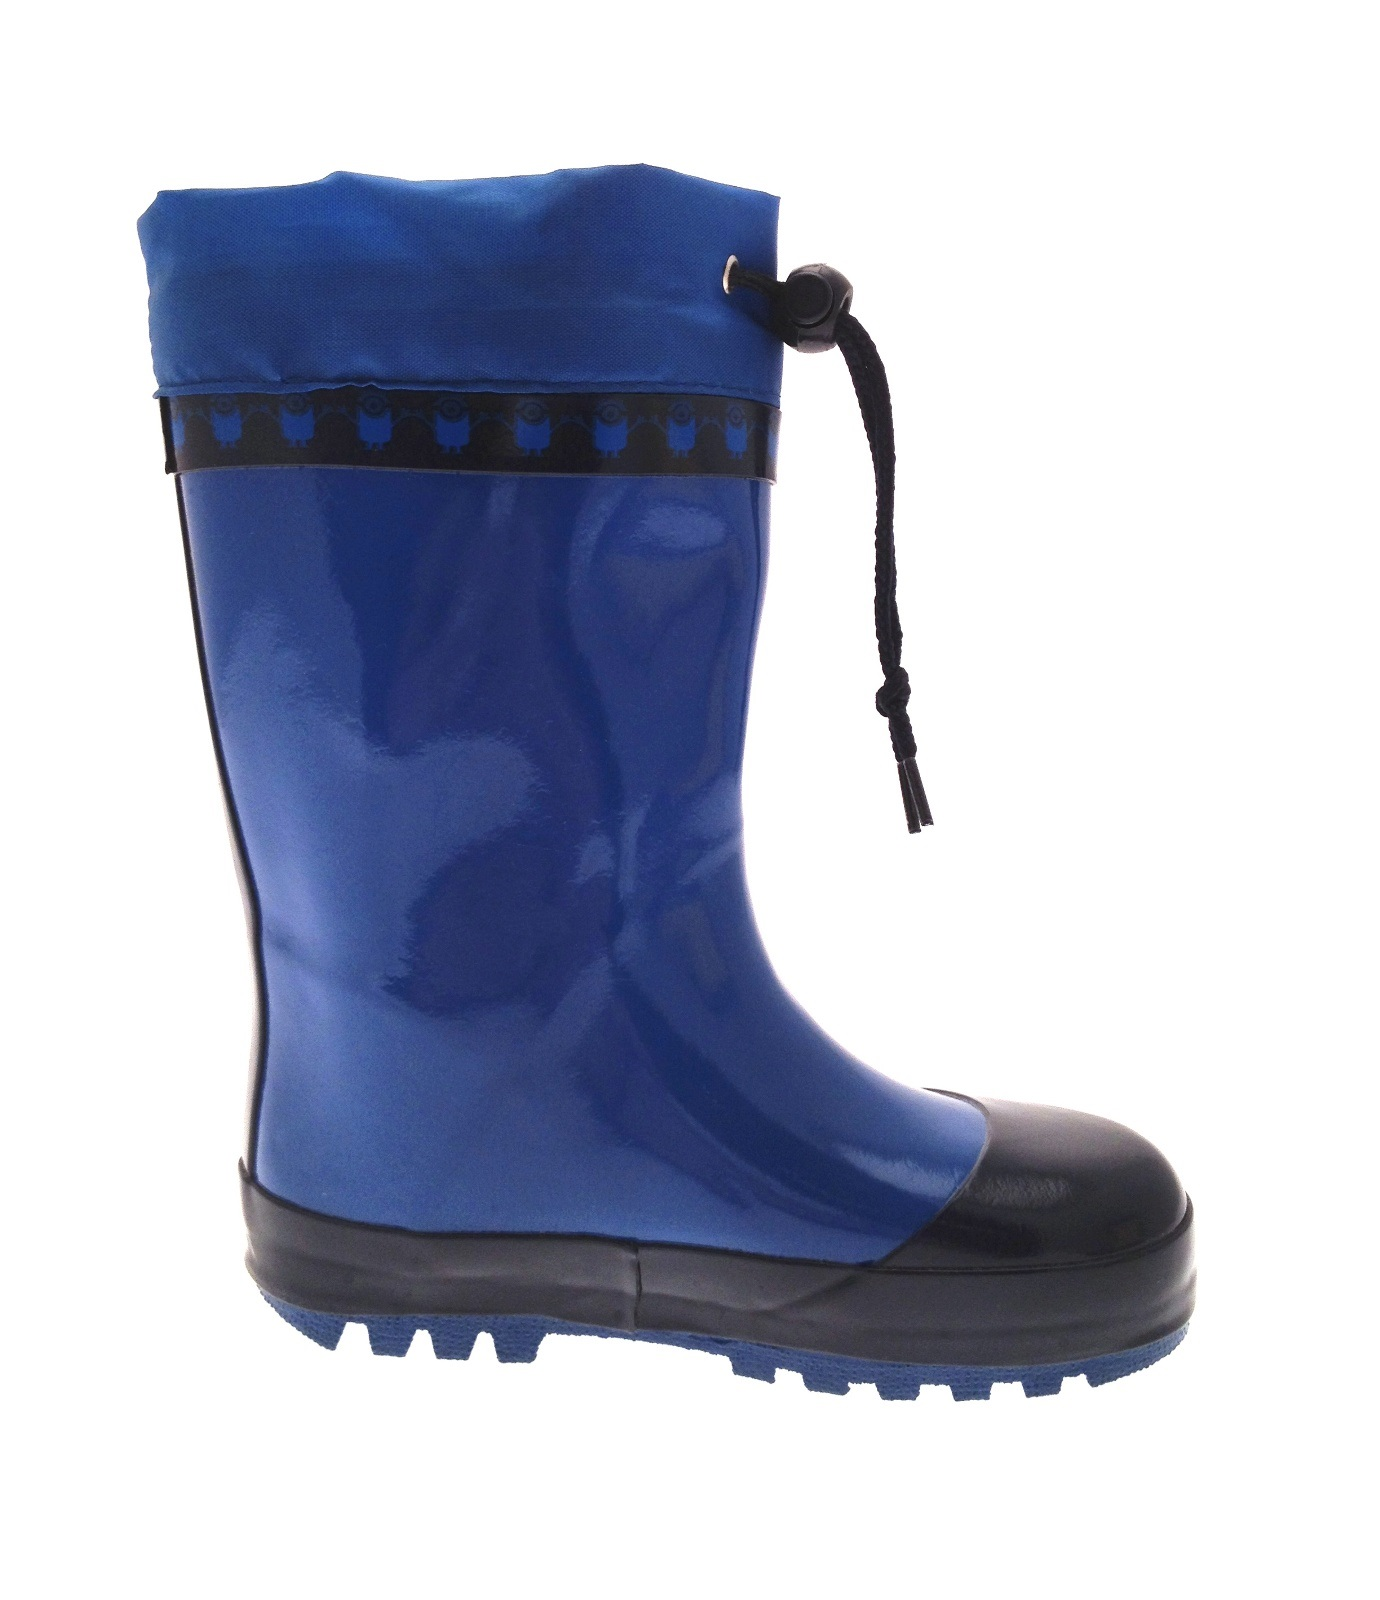 Find great deals on eBay for boys wellington boots. Shop with confidence.